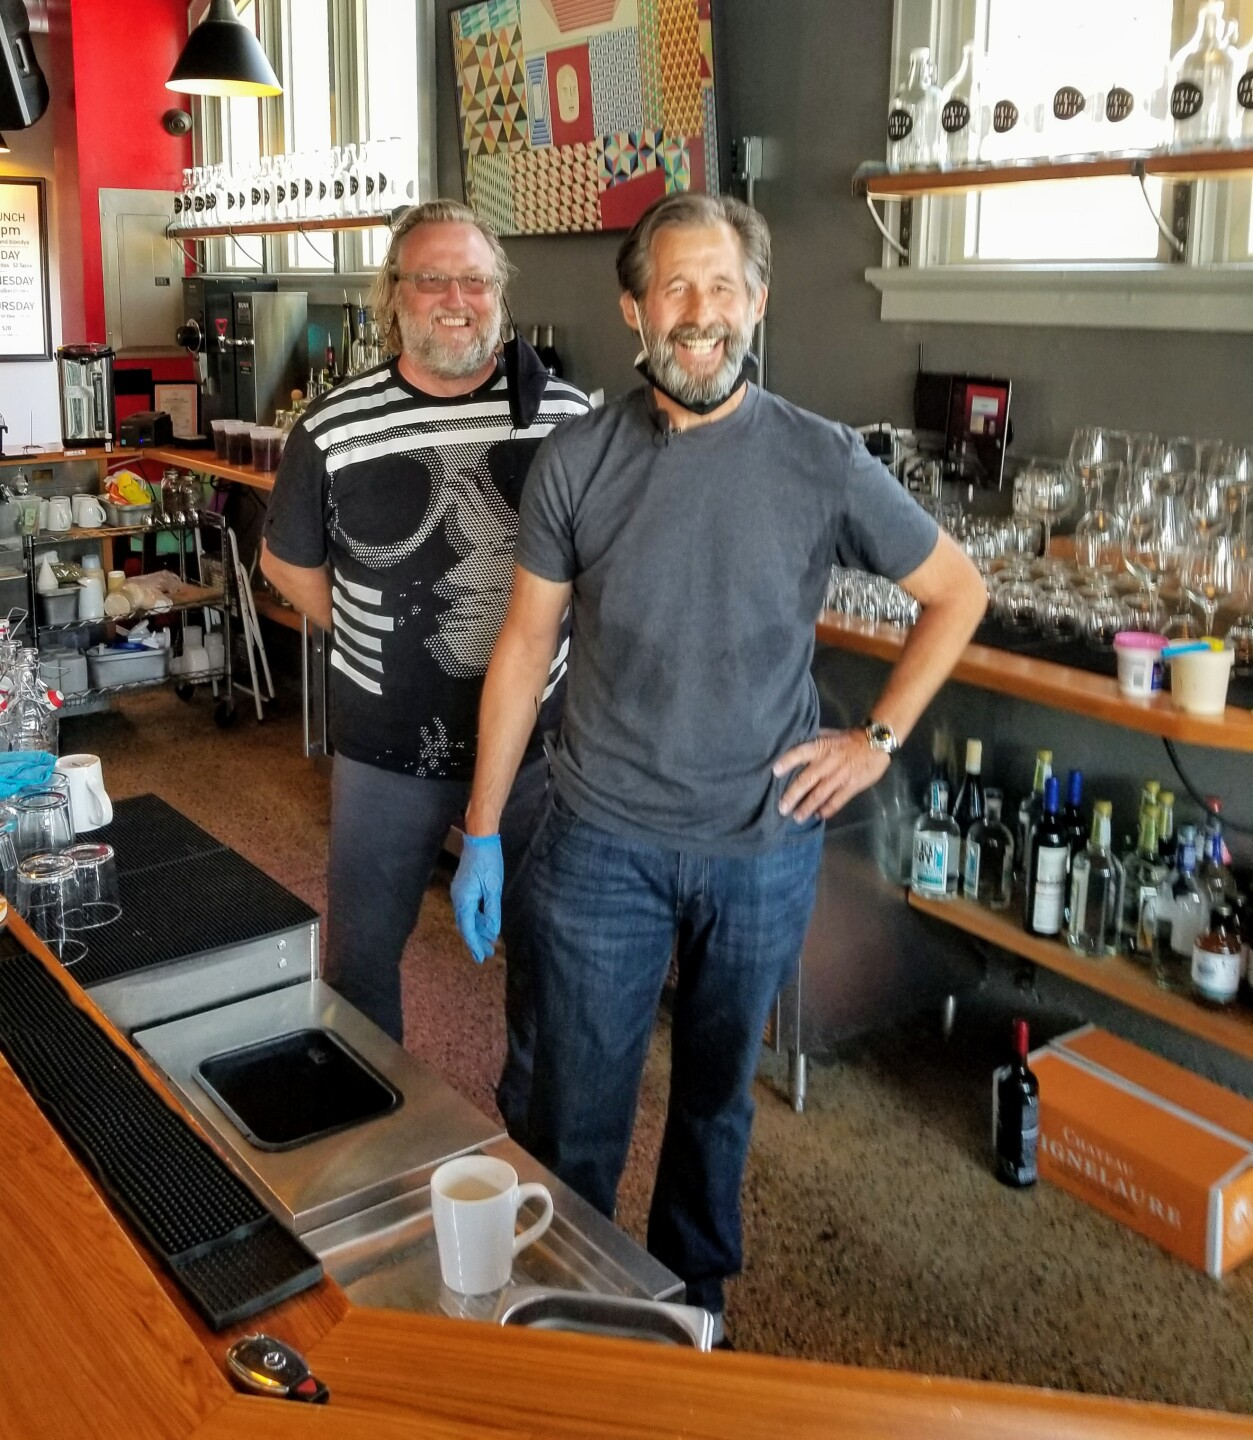 The owners of Public Table are taking extra safety precautions to keep staff and customers healthy.